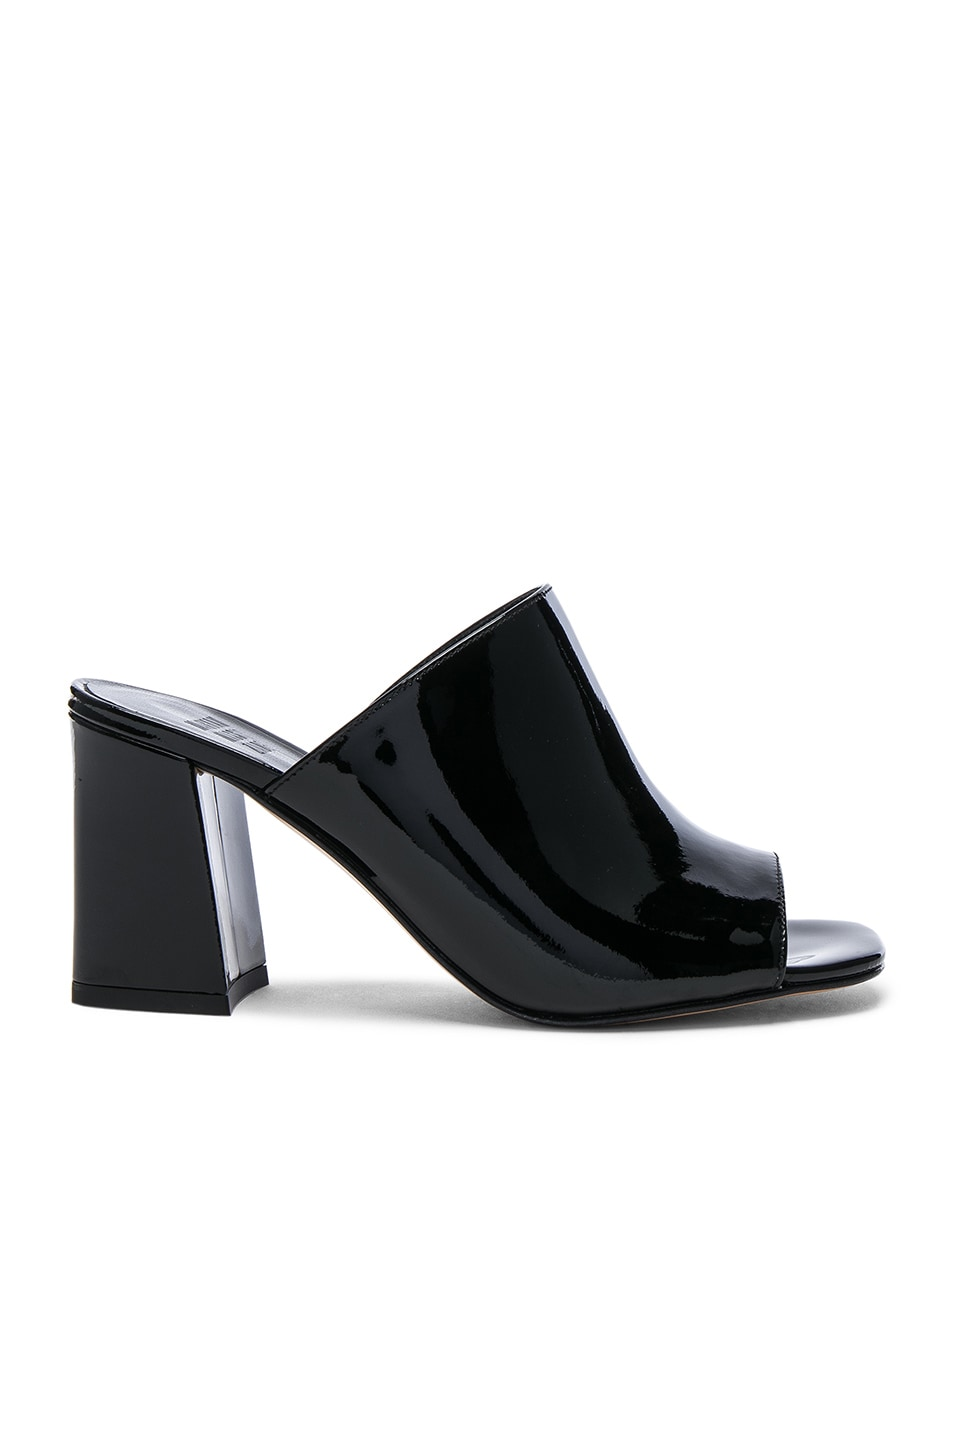 Image 1 of Maryam Nassir Zadeh Patent Leather Penelope Mules in Black Patent